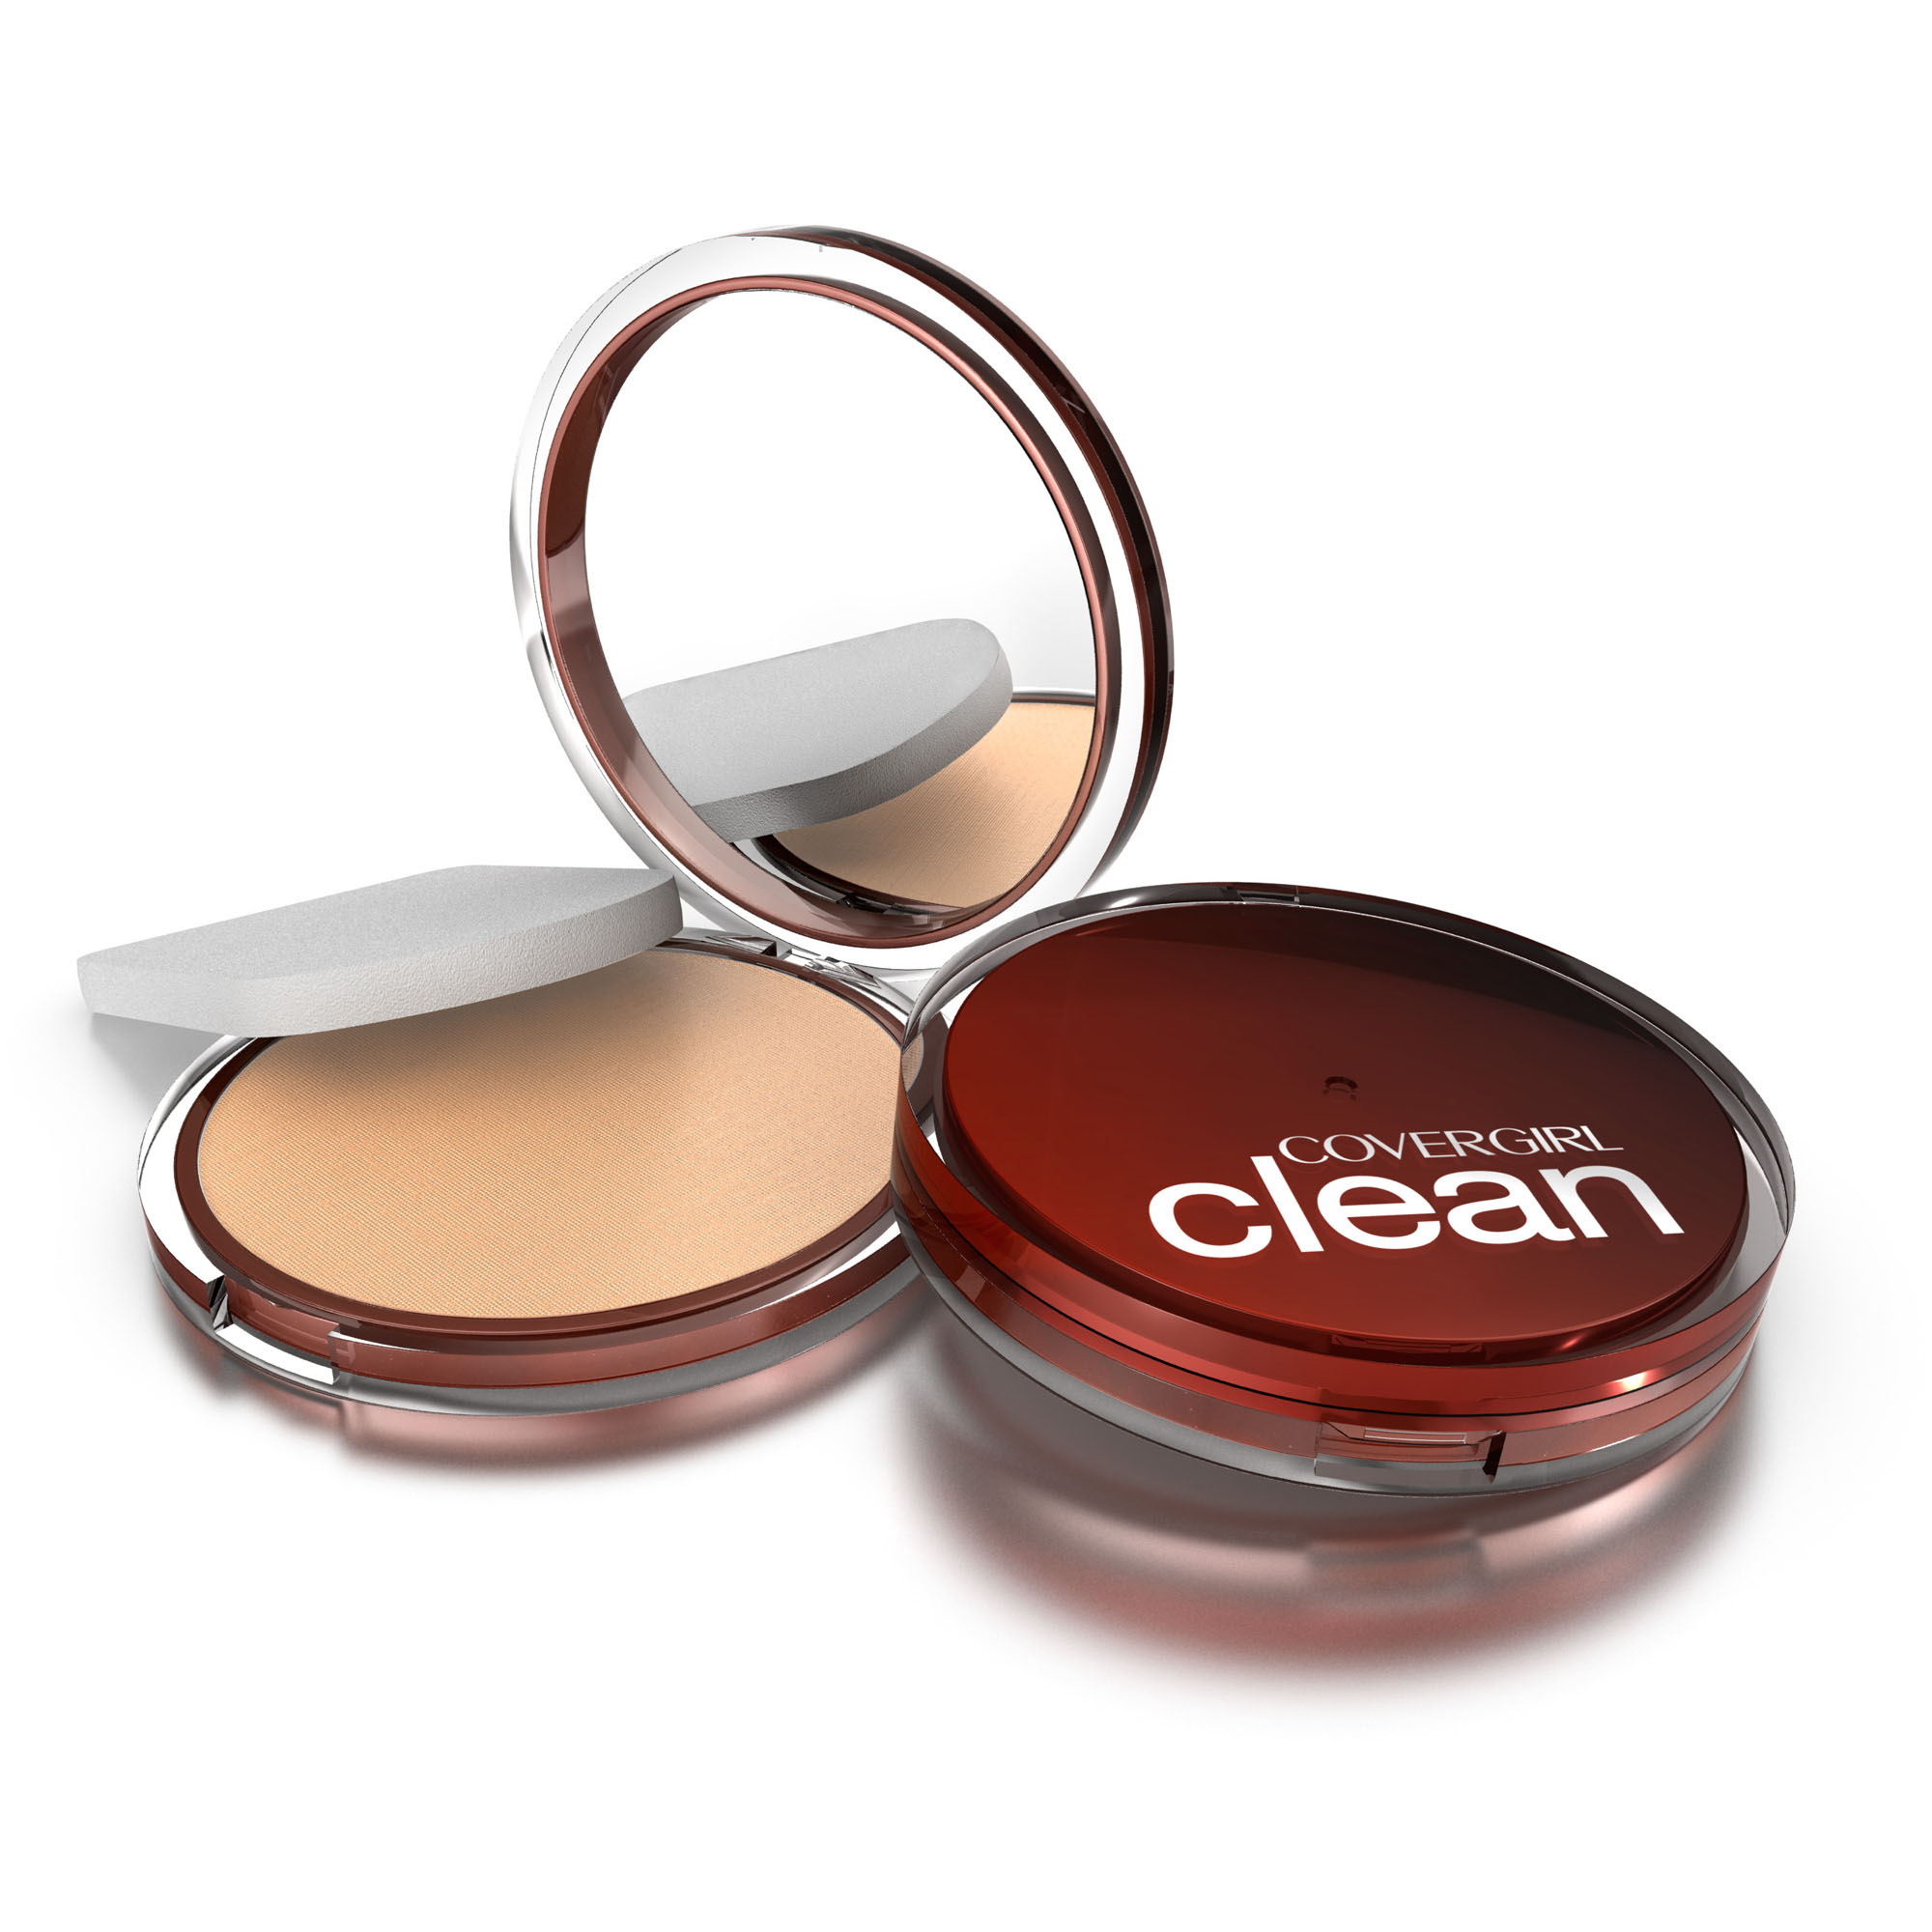 COVERGIRL Clean Pressed Powder, Classic Ivory